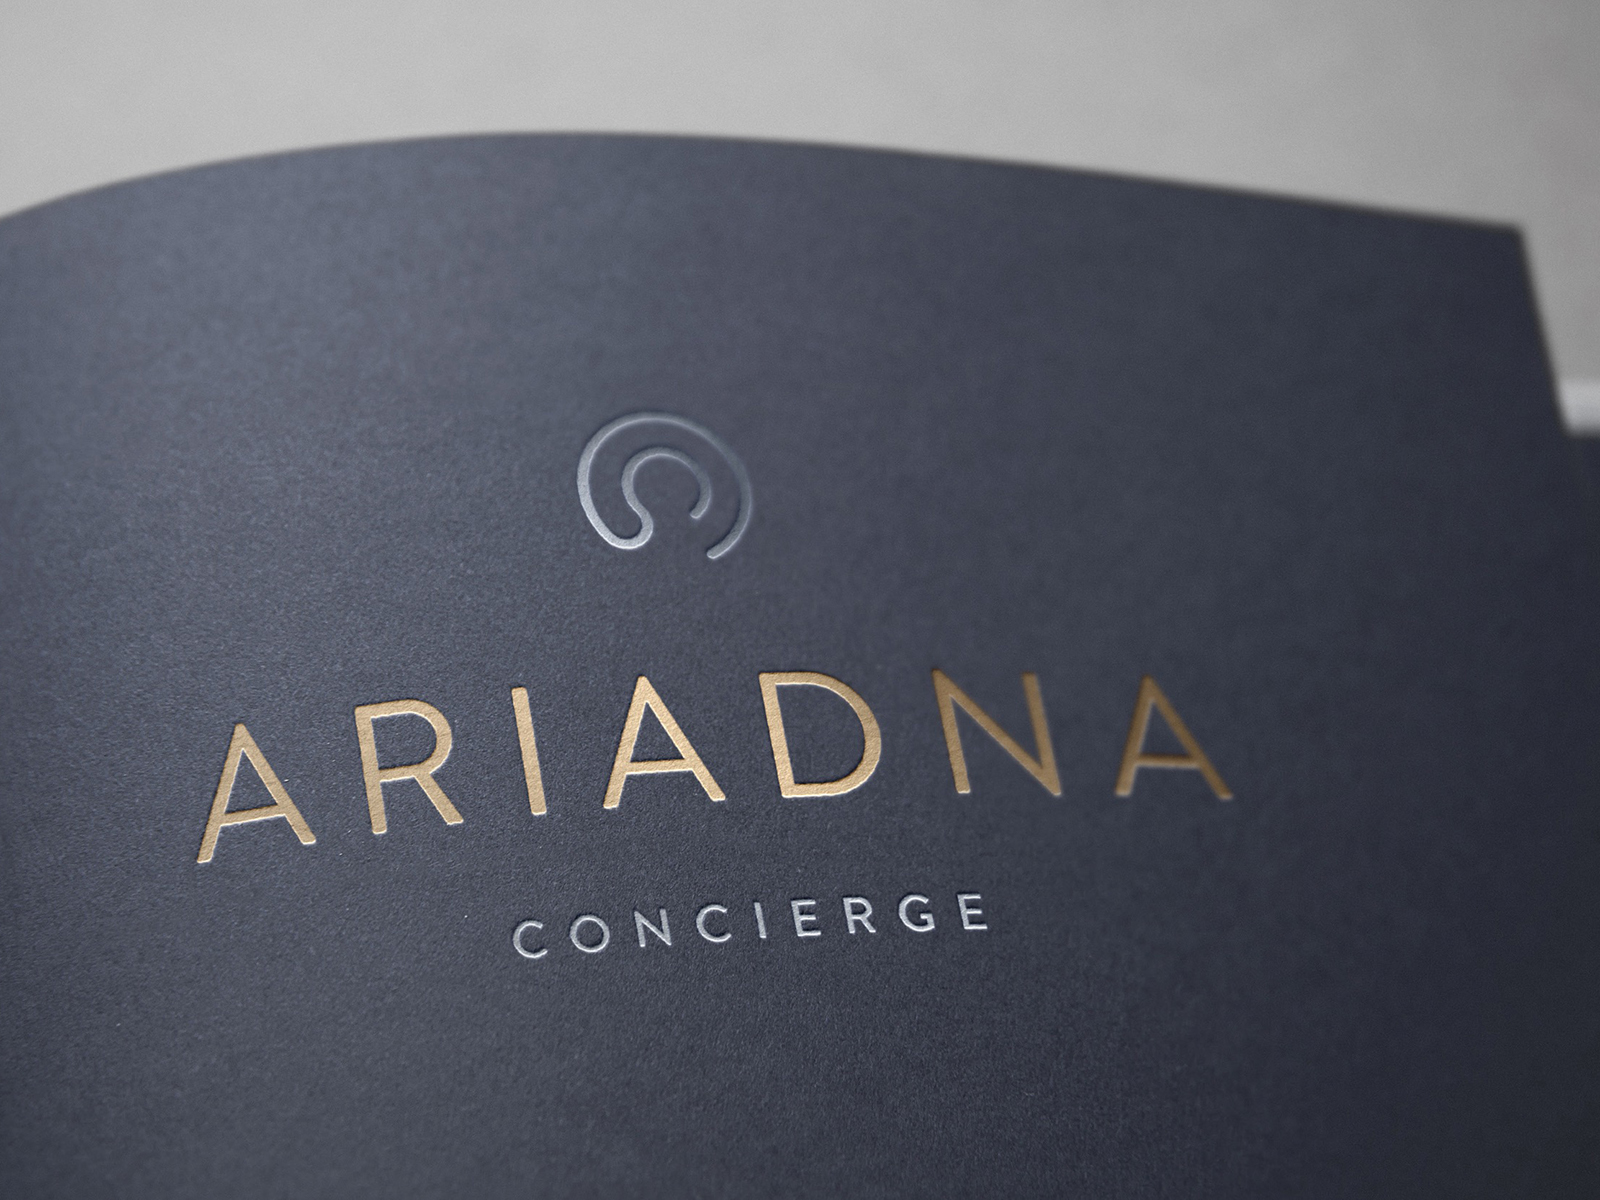 Ariadna Project type